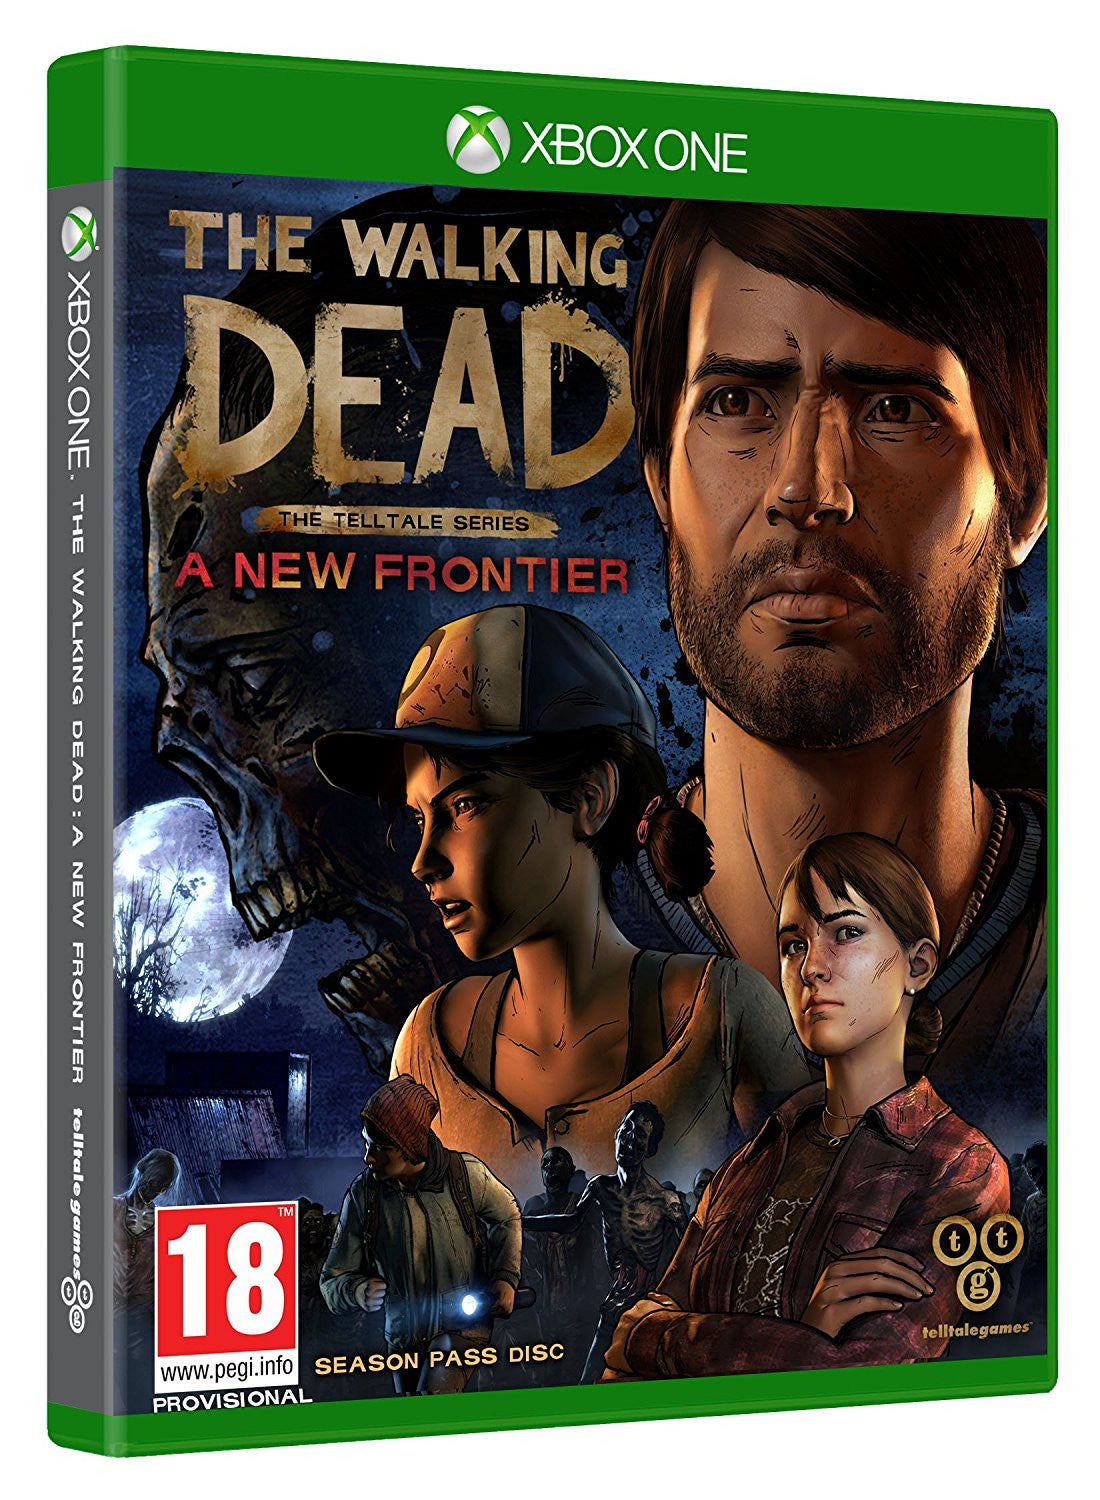 The Walking Dead - The Telltale Series: A New Frontier - Xbox One - Video Games by Warner Bros. Interactive Entertainment The Chelsea Gamer